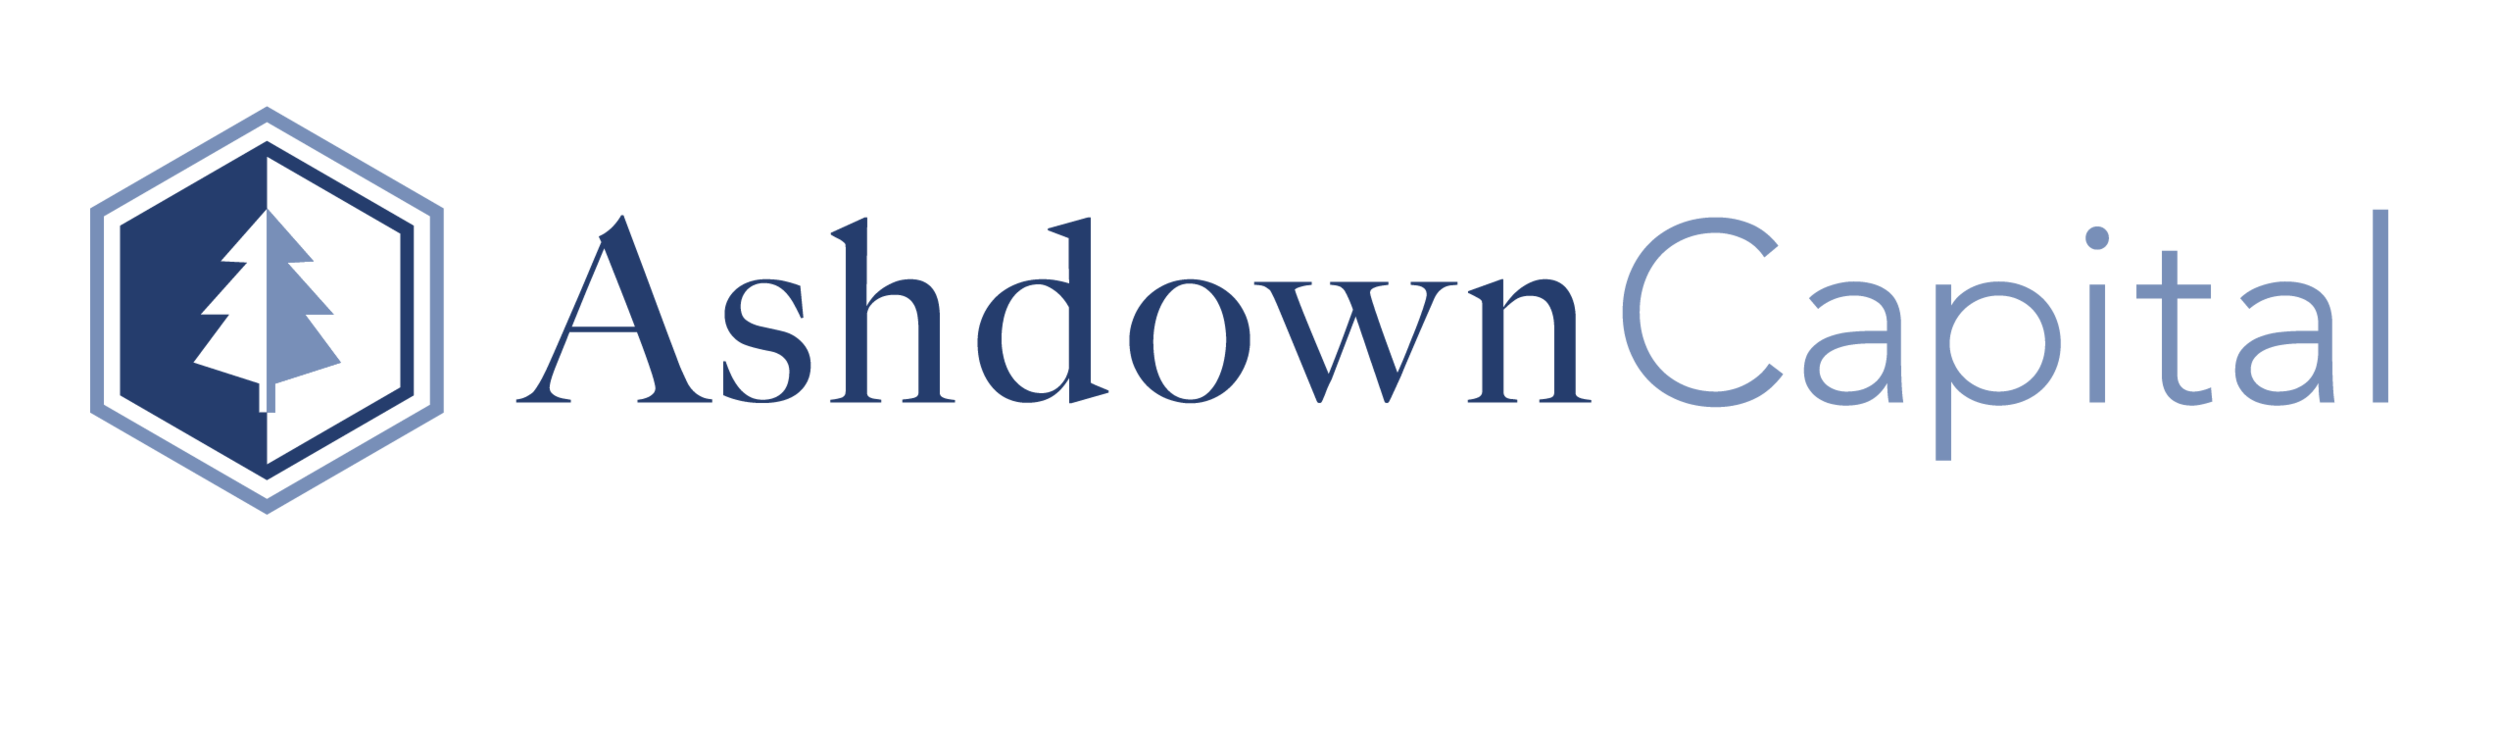 WG-AshdownCapital_LogoProduction.CMYK.02.18.2018_Ashdown Capital Logo Mark Colour No Tagline Horizontal-05.png